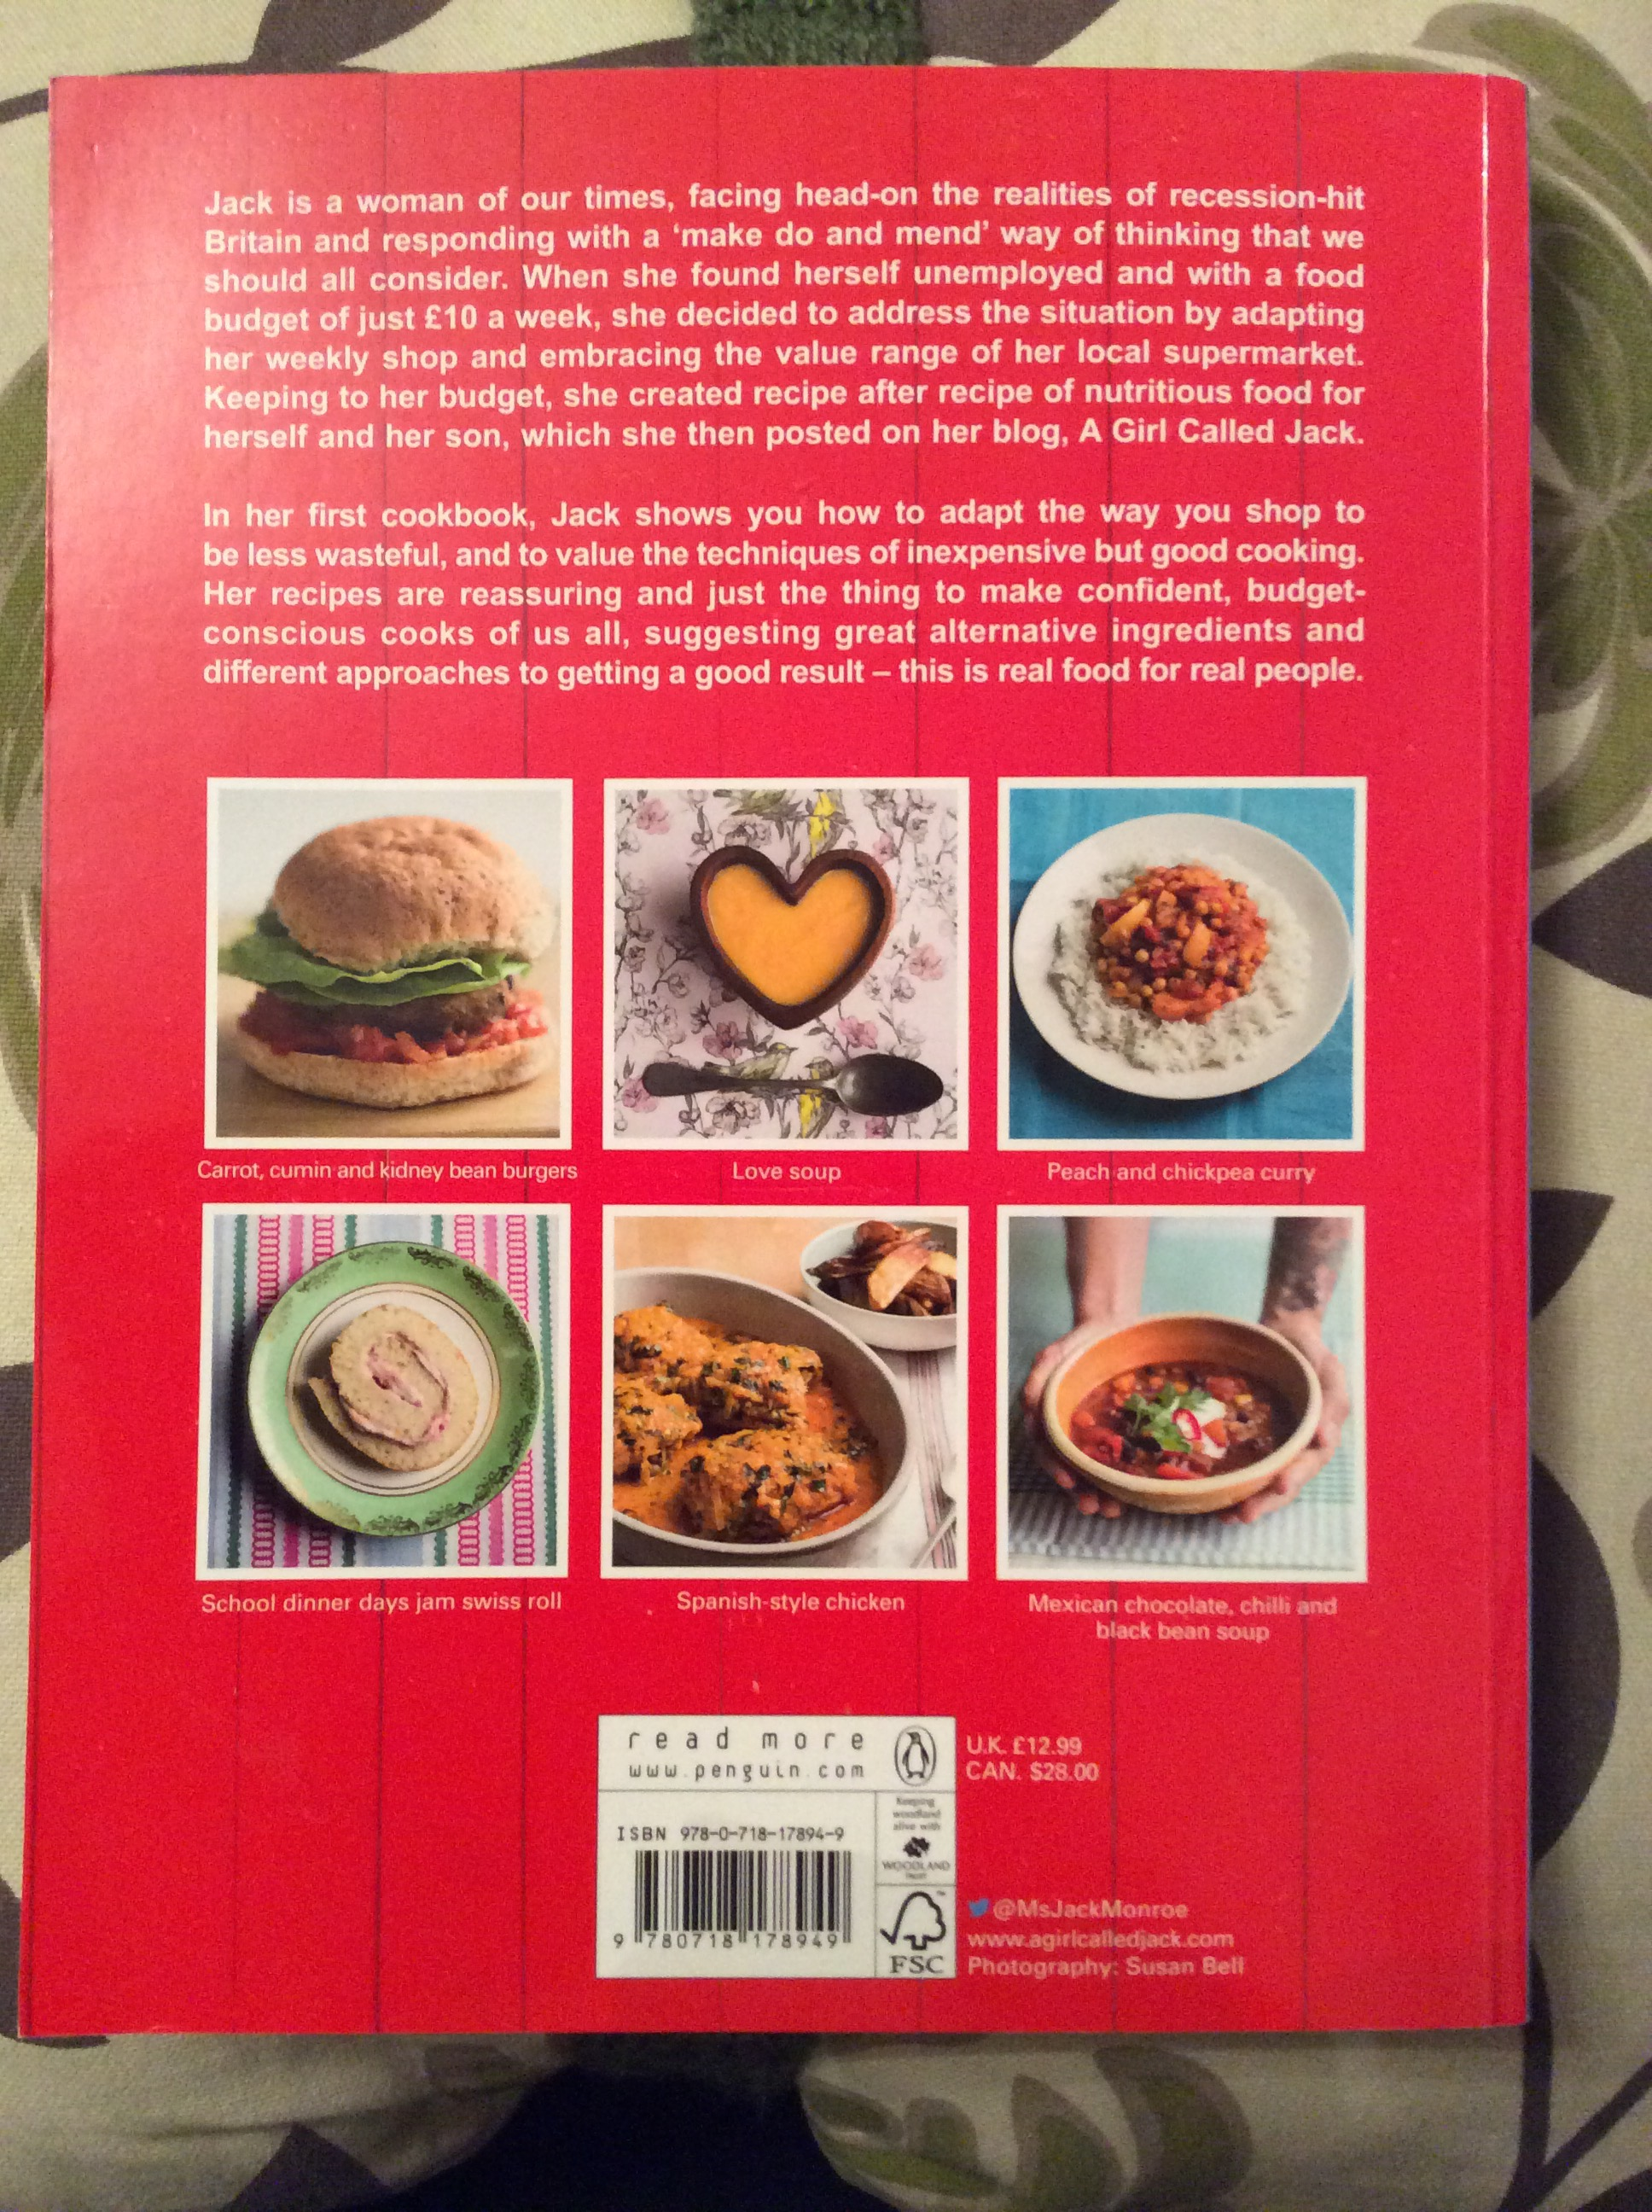 Im a baker not a chef humbugshouse i have just bought this book yet know its going to change the way i cook and help me be more passionate about what we eat and how its made forumfinder Gallery